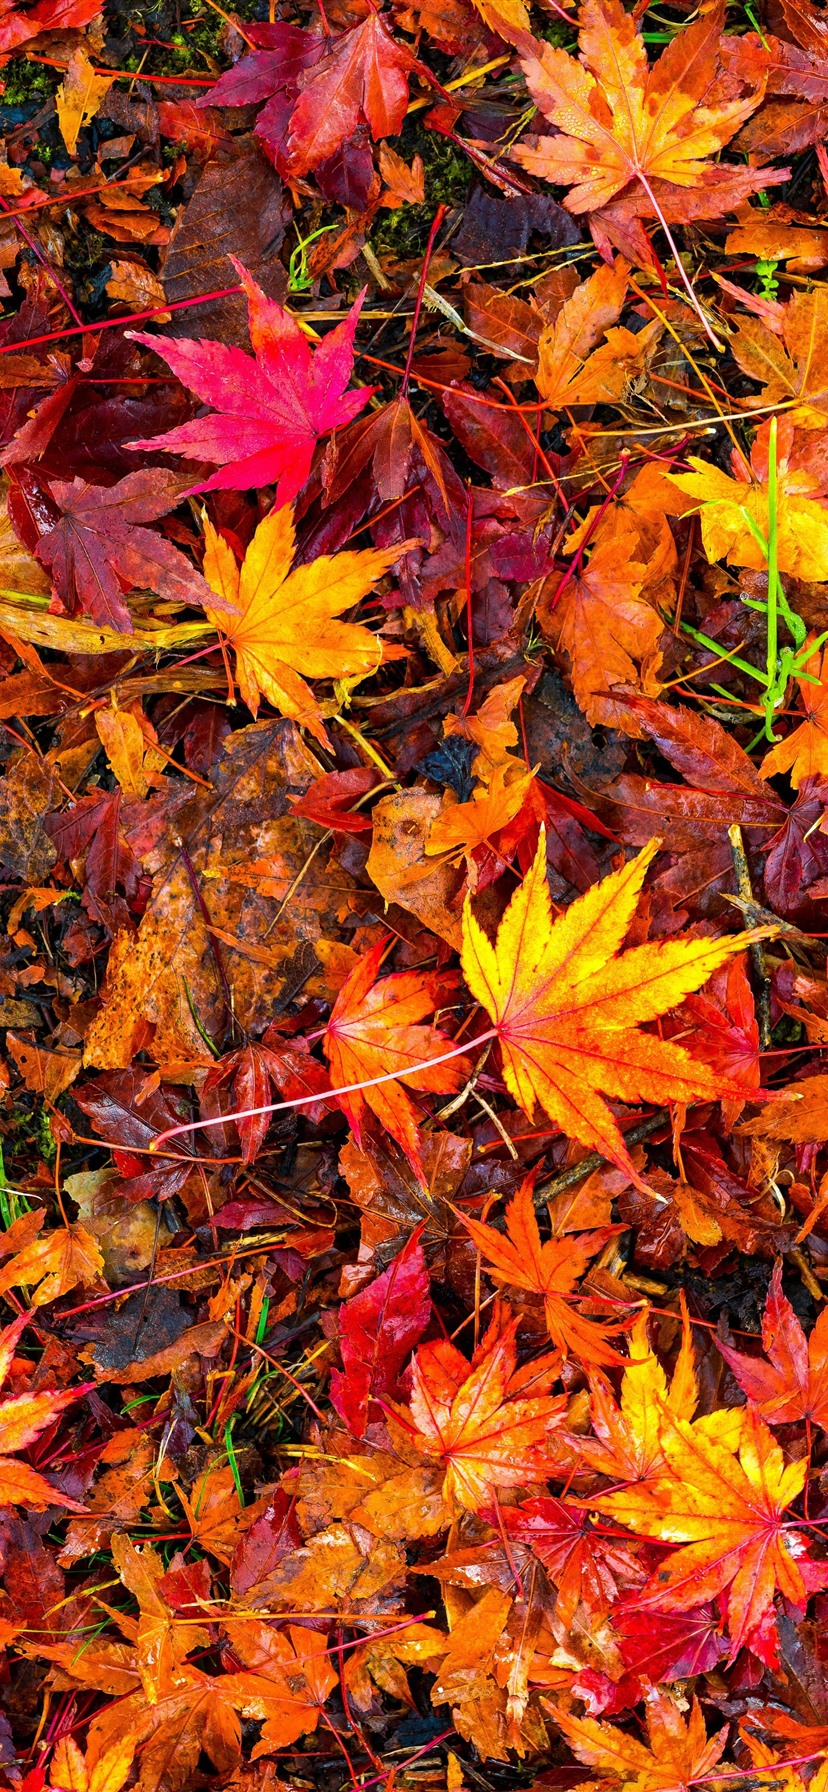 Many Red Maple Leaves Ground Autumn 1242x2688 Iphone 11 Pro Xs Max Wallpaper Background Picture Image